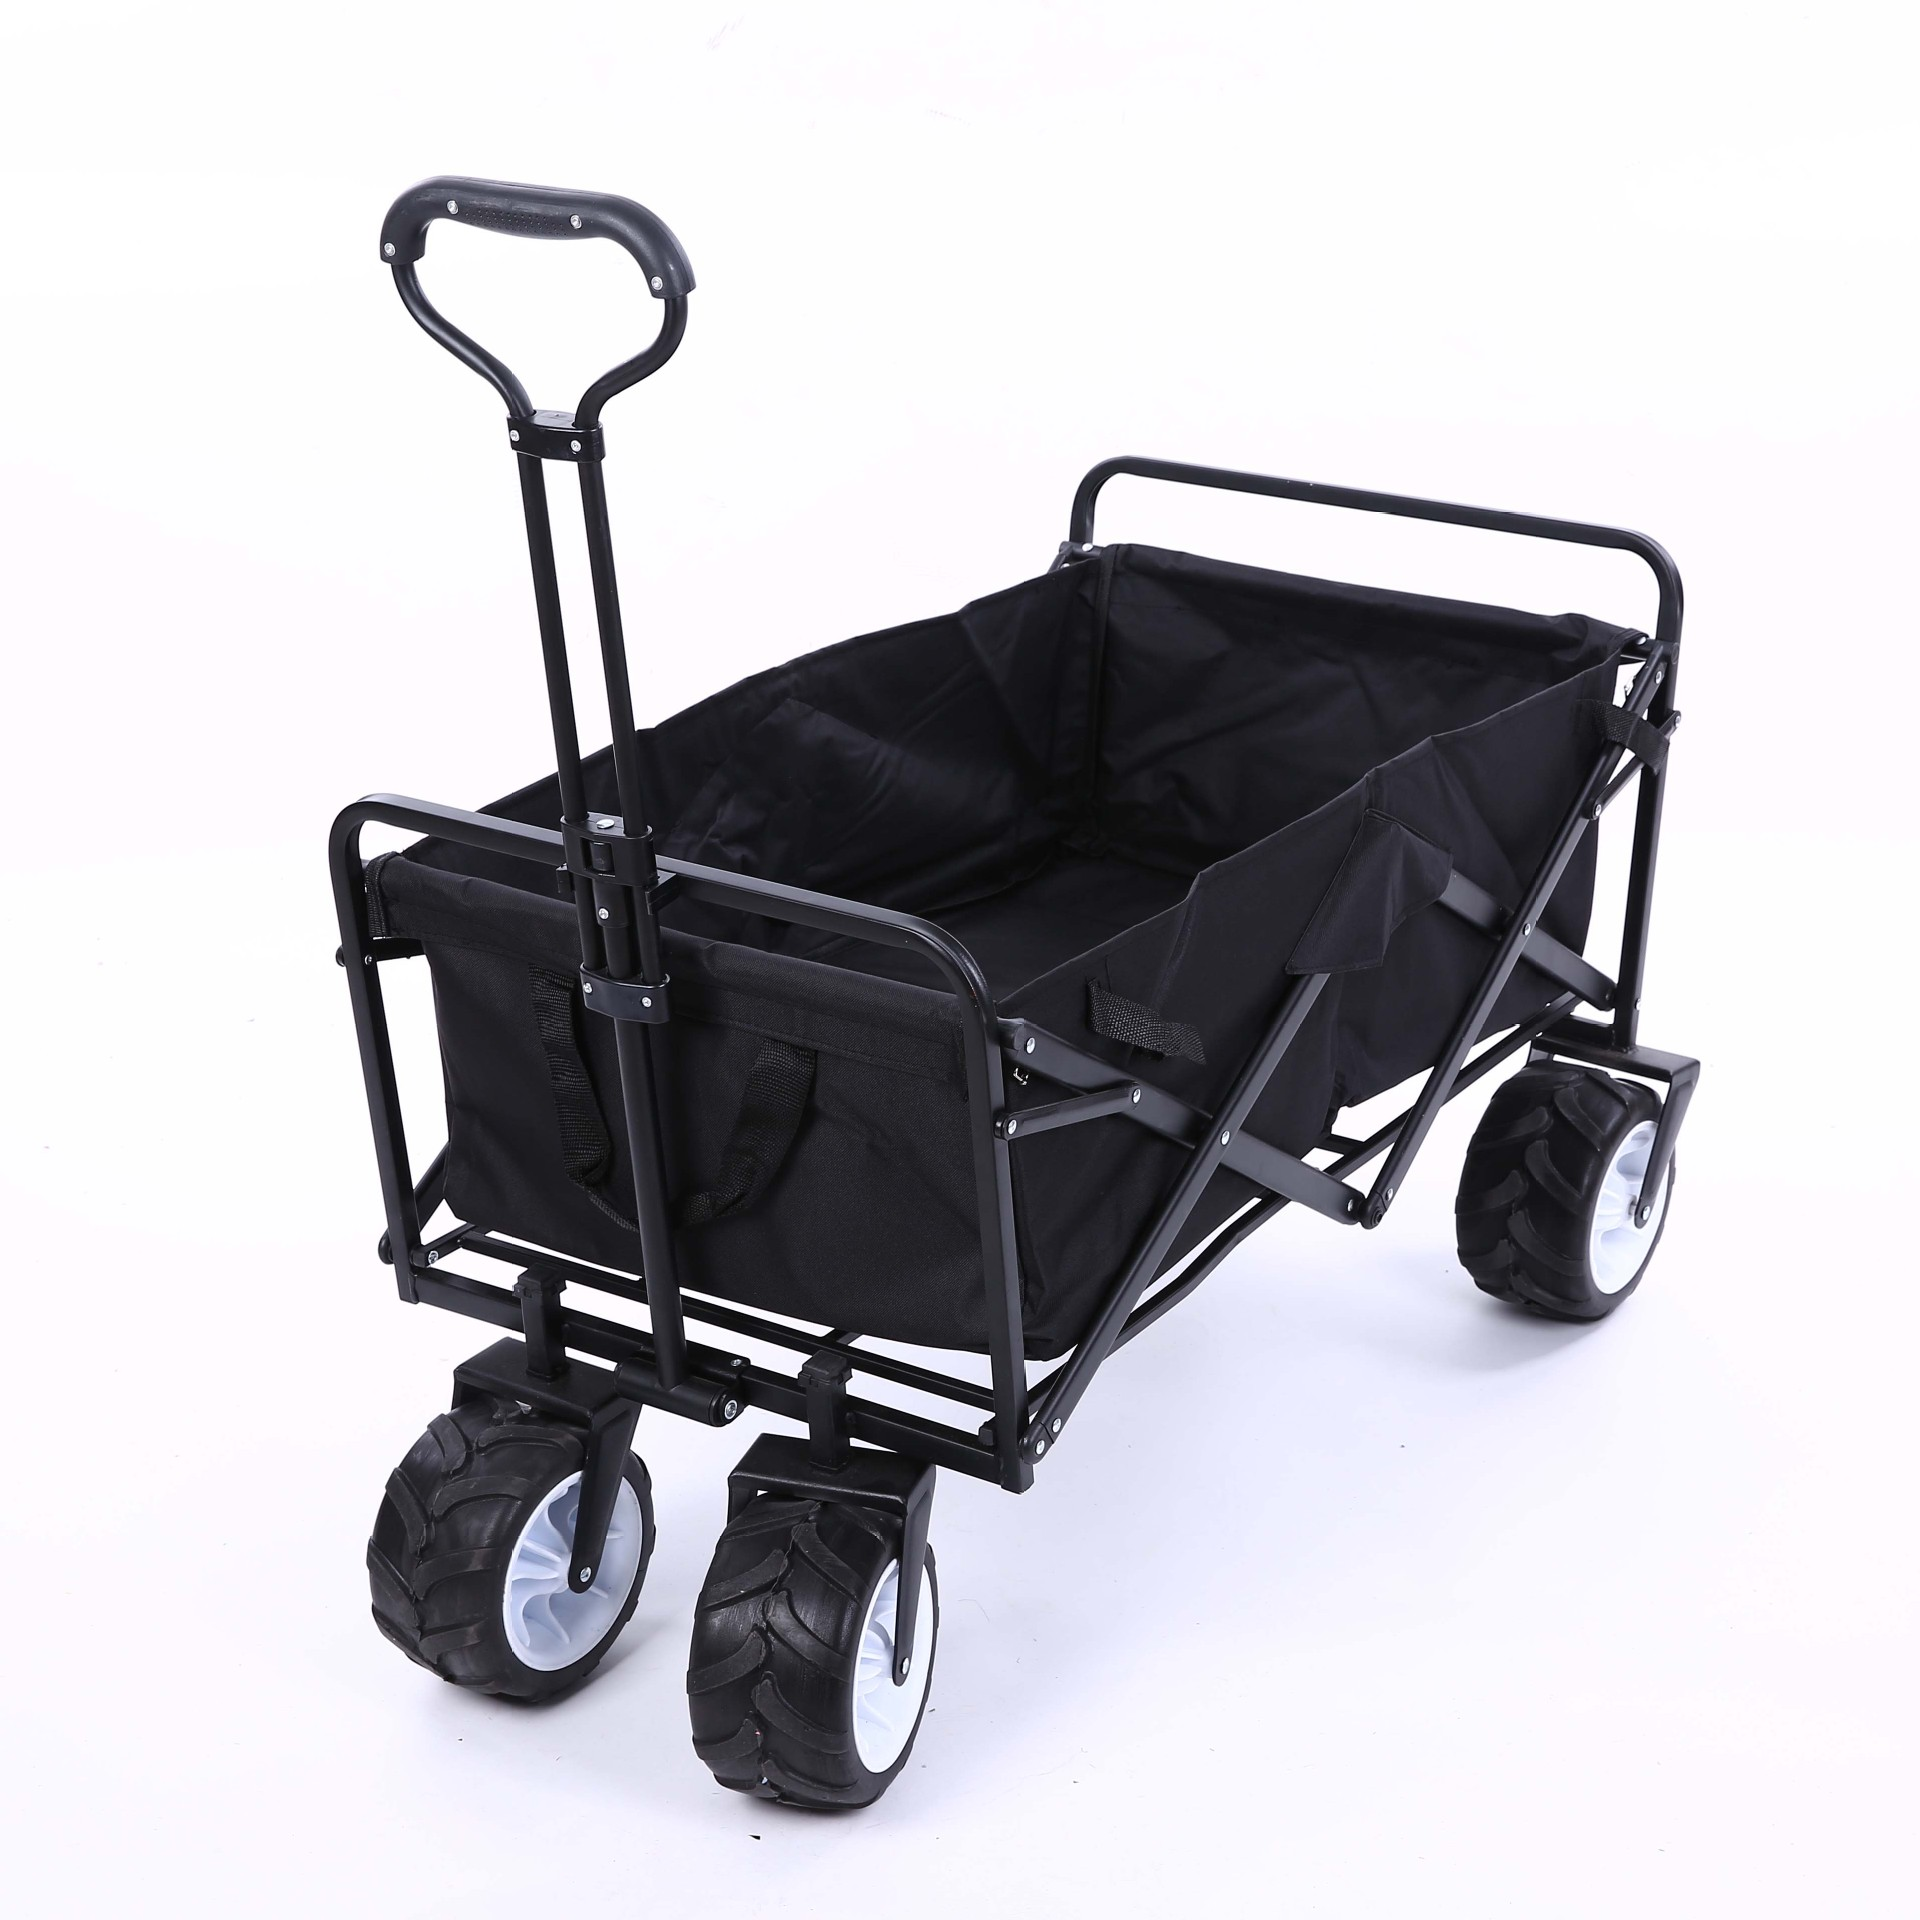 Foldable Portable Stainless Steel 600D Oxford Cloth Four Wheels Pet Stroller Large Space Shopping Cart